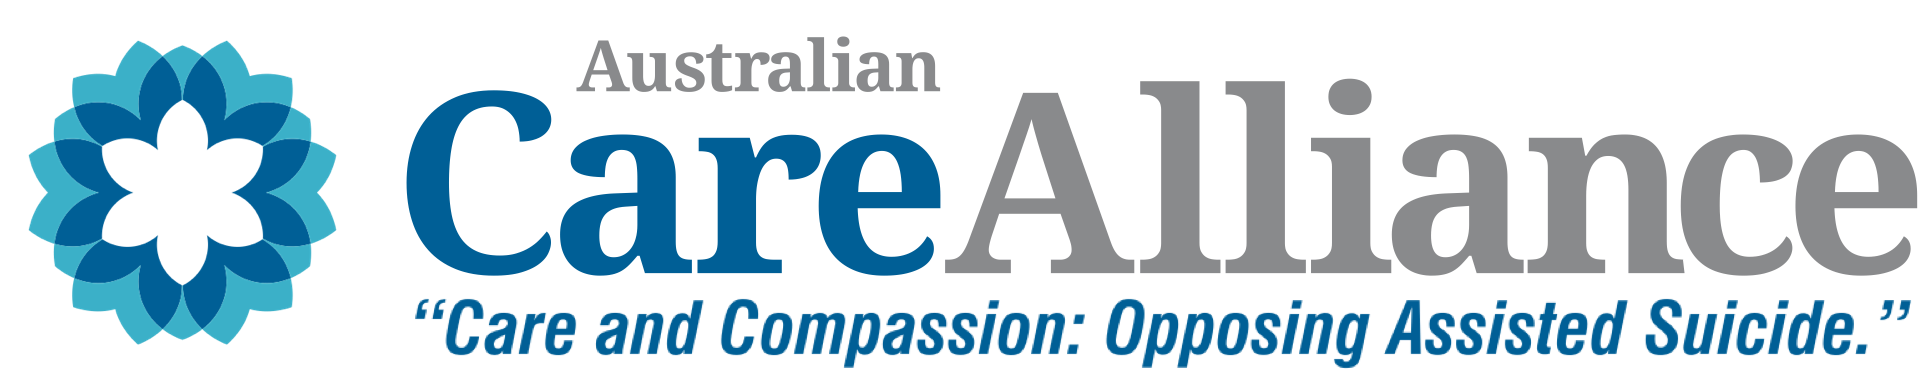 Australian Care Alliance